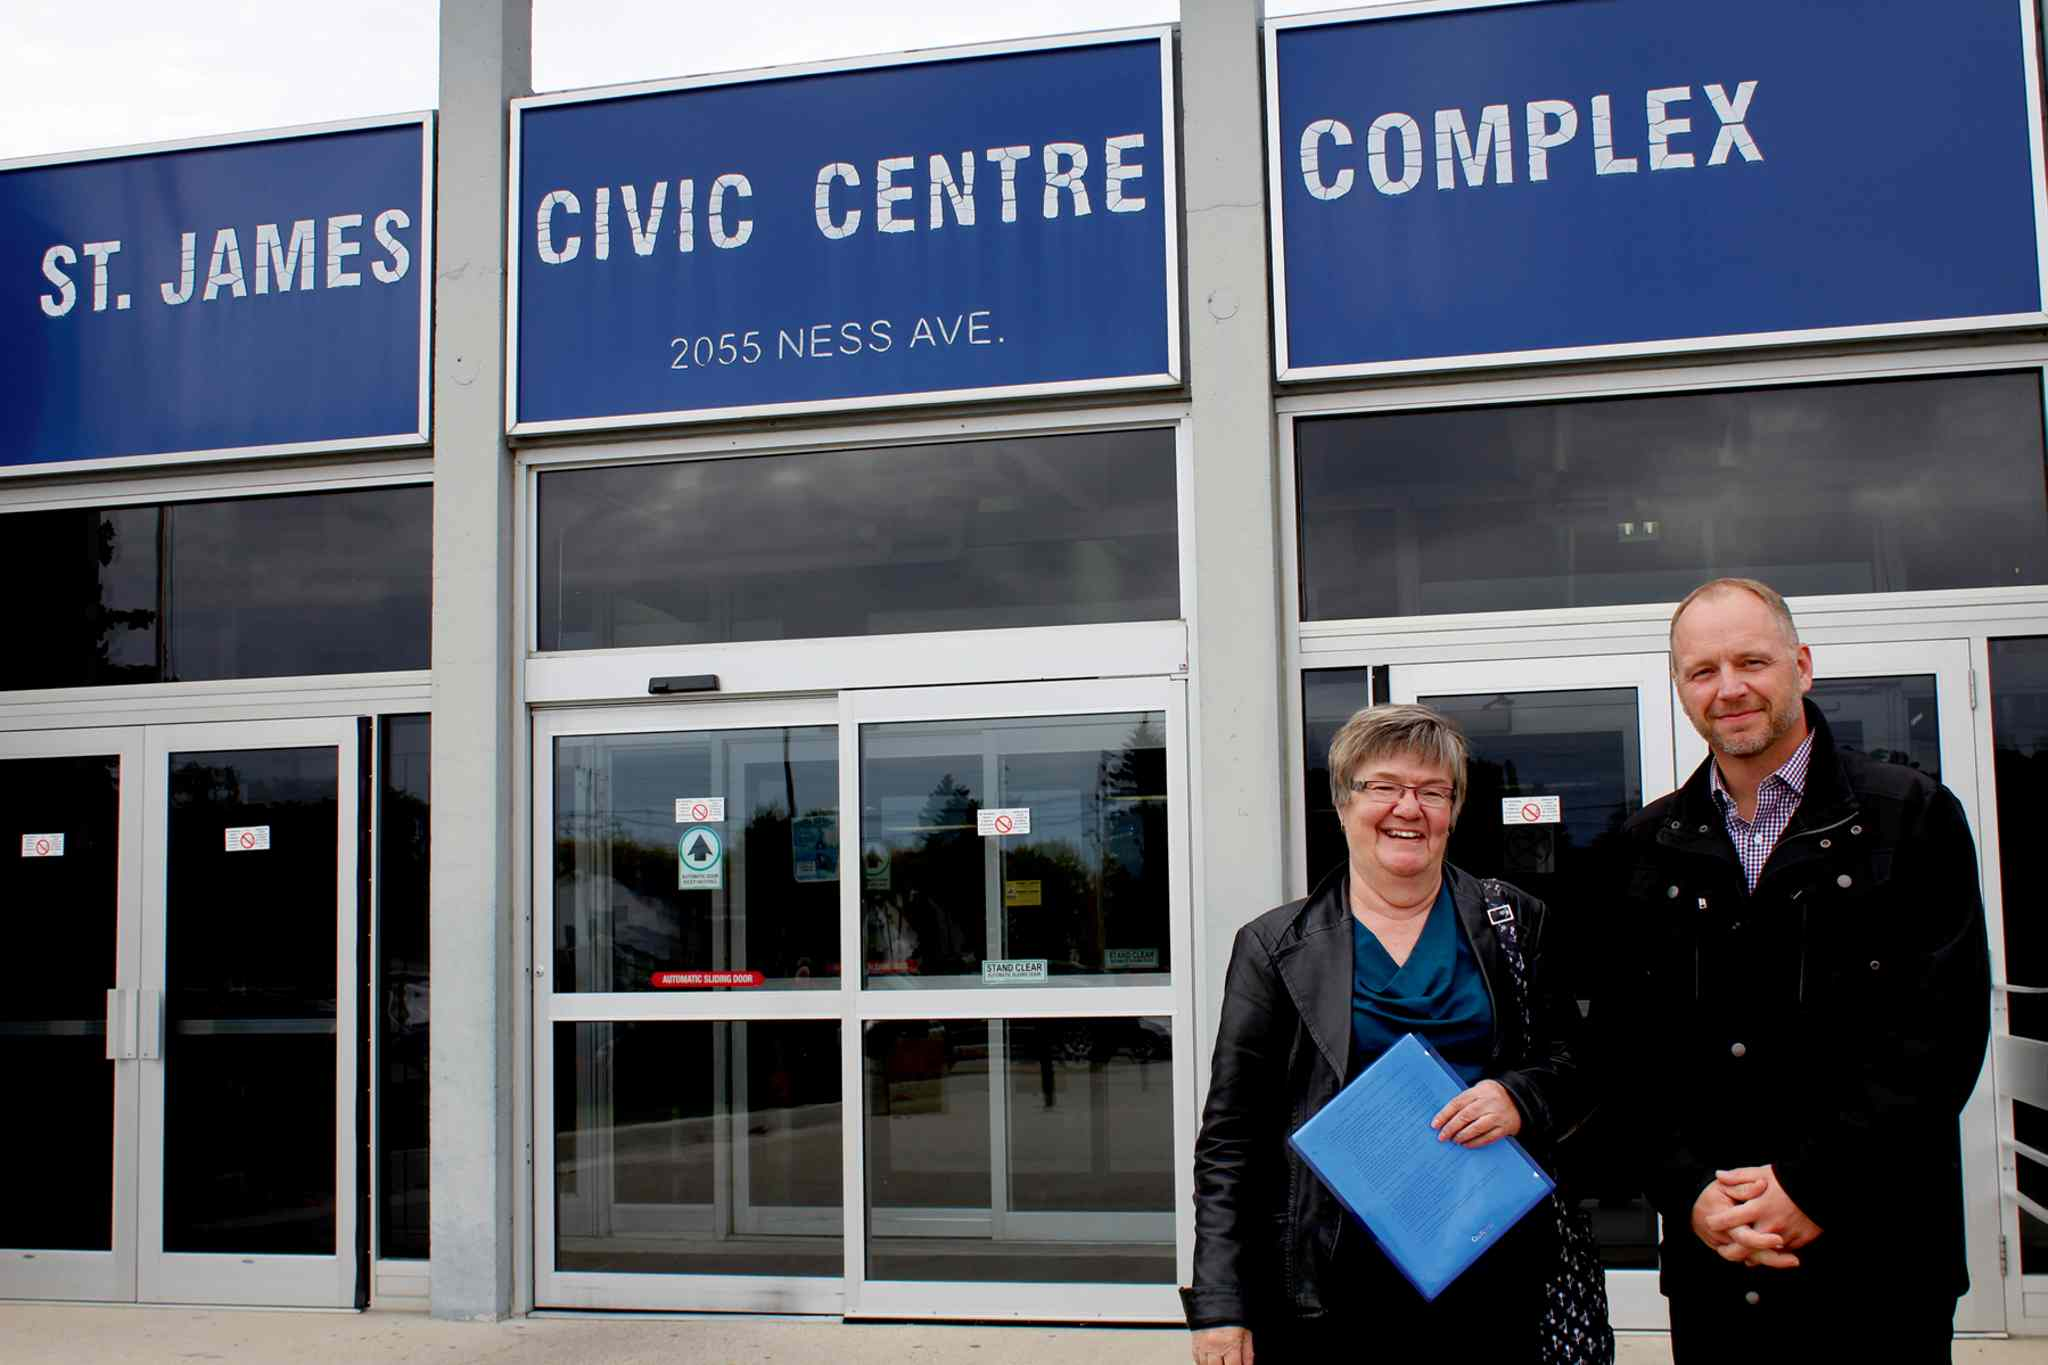 Connie Newman (left) and Scott Gillingham are working together to ensure renovations, upgrades and additions to the St. James Civic Centre Complex benefit not just senior citizens, but all members of the community.